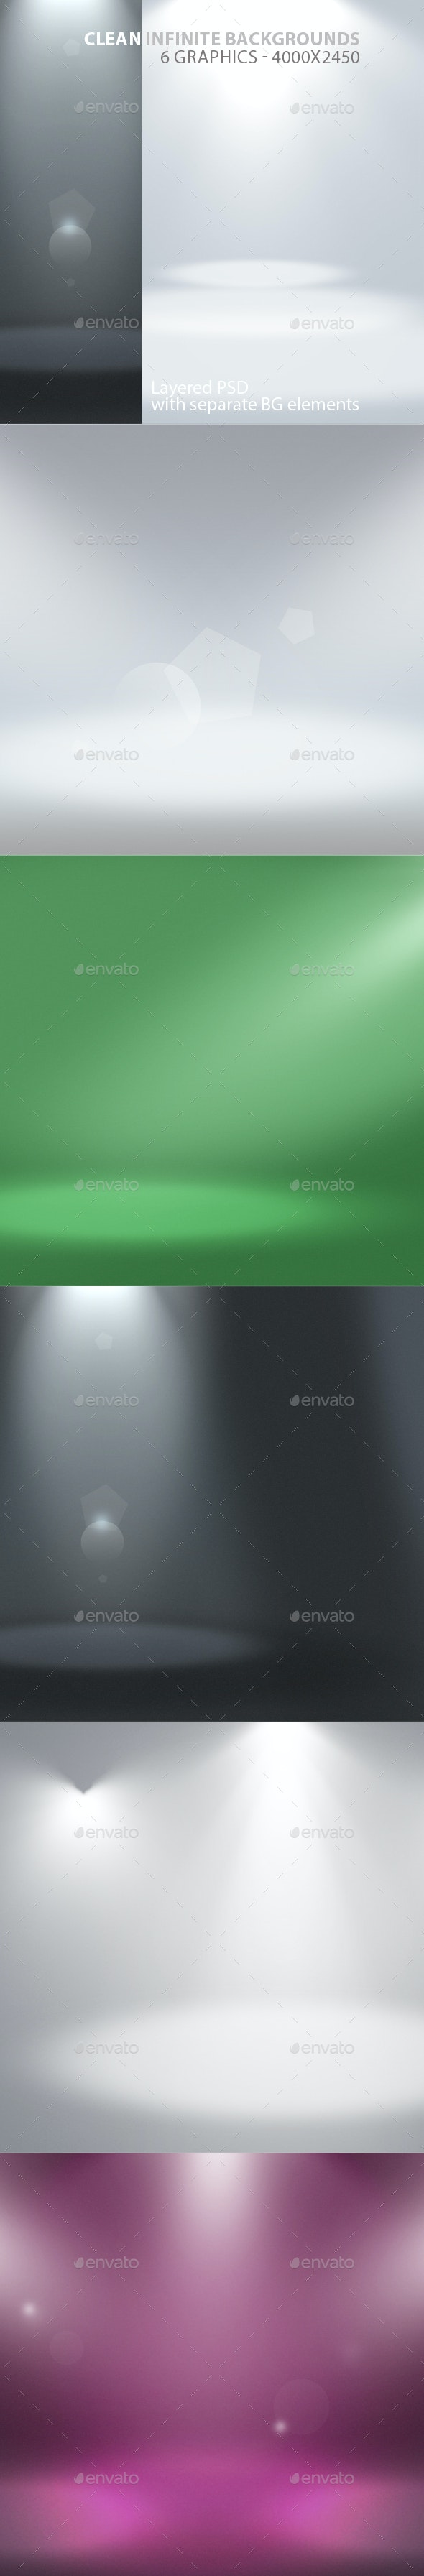 Clean Infinite Layered Backgrounds - Backgrounds Graphics